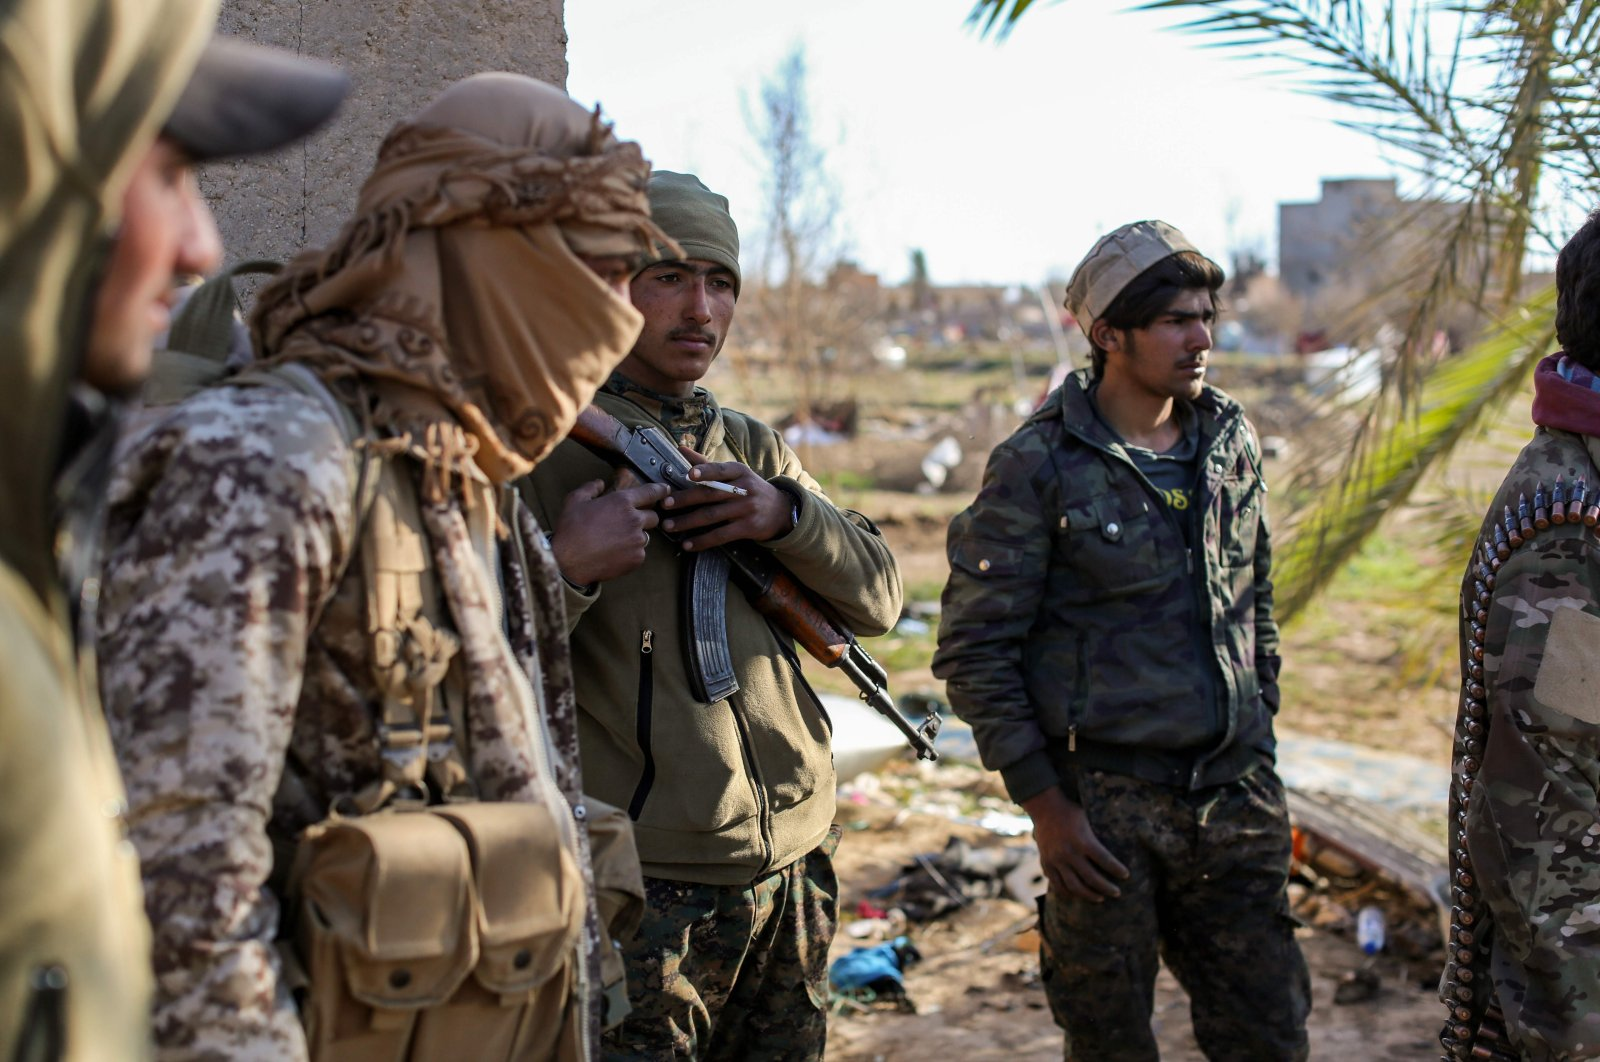 YPG/PKK terrorists check a makeshift camp for Daesh terror group members and their families in the town of Baghouz, in the eastern Syrian province of Deir el-Zour, March 9, 2019. (AFP Photo)